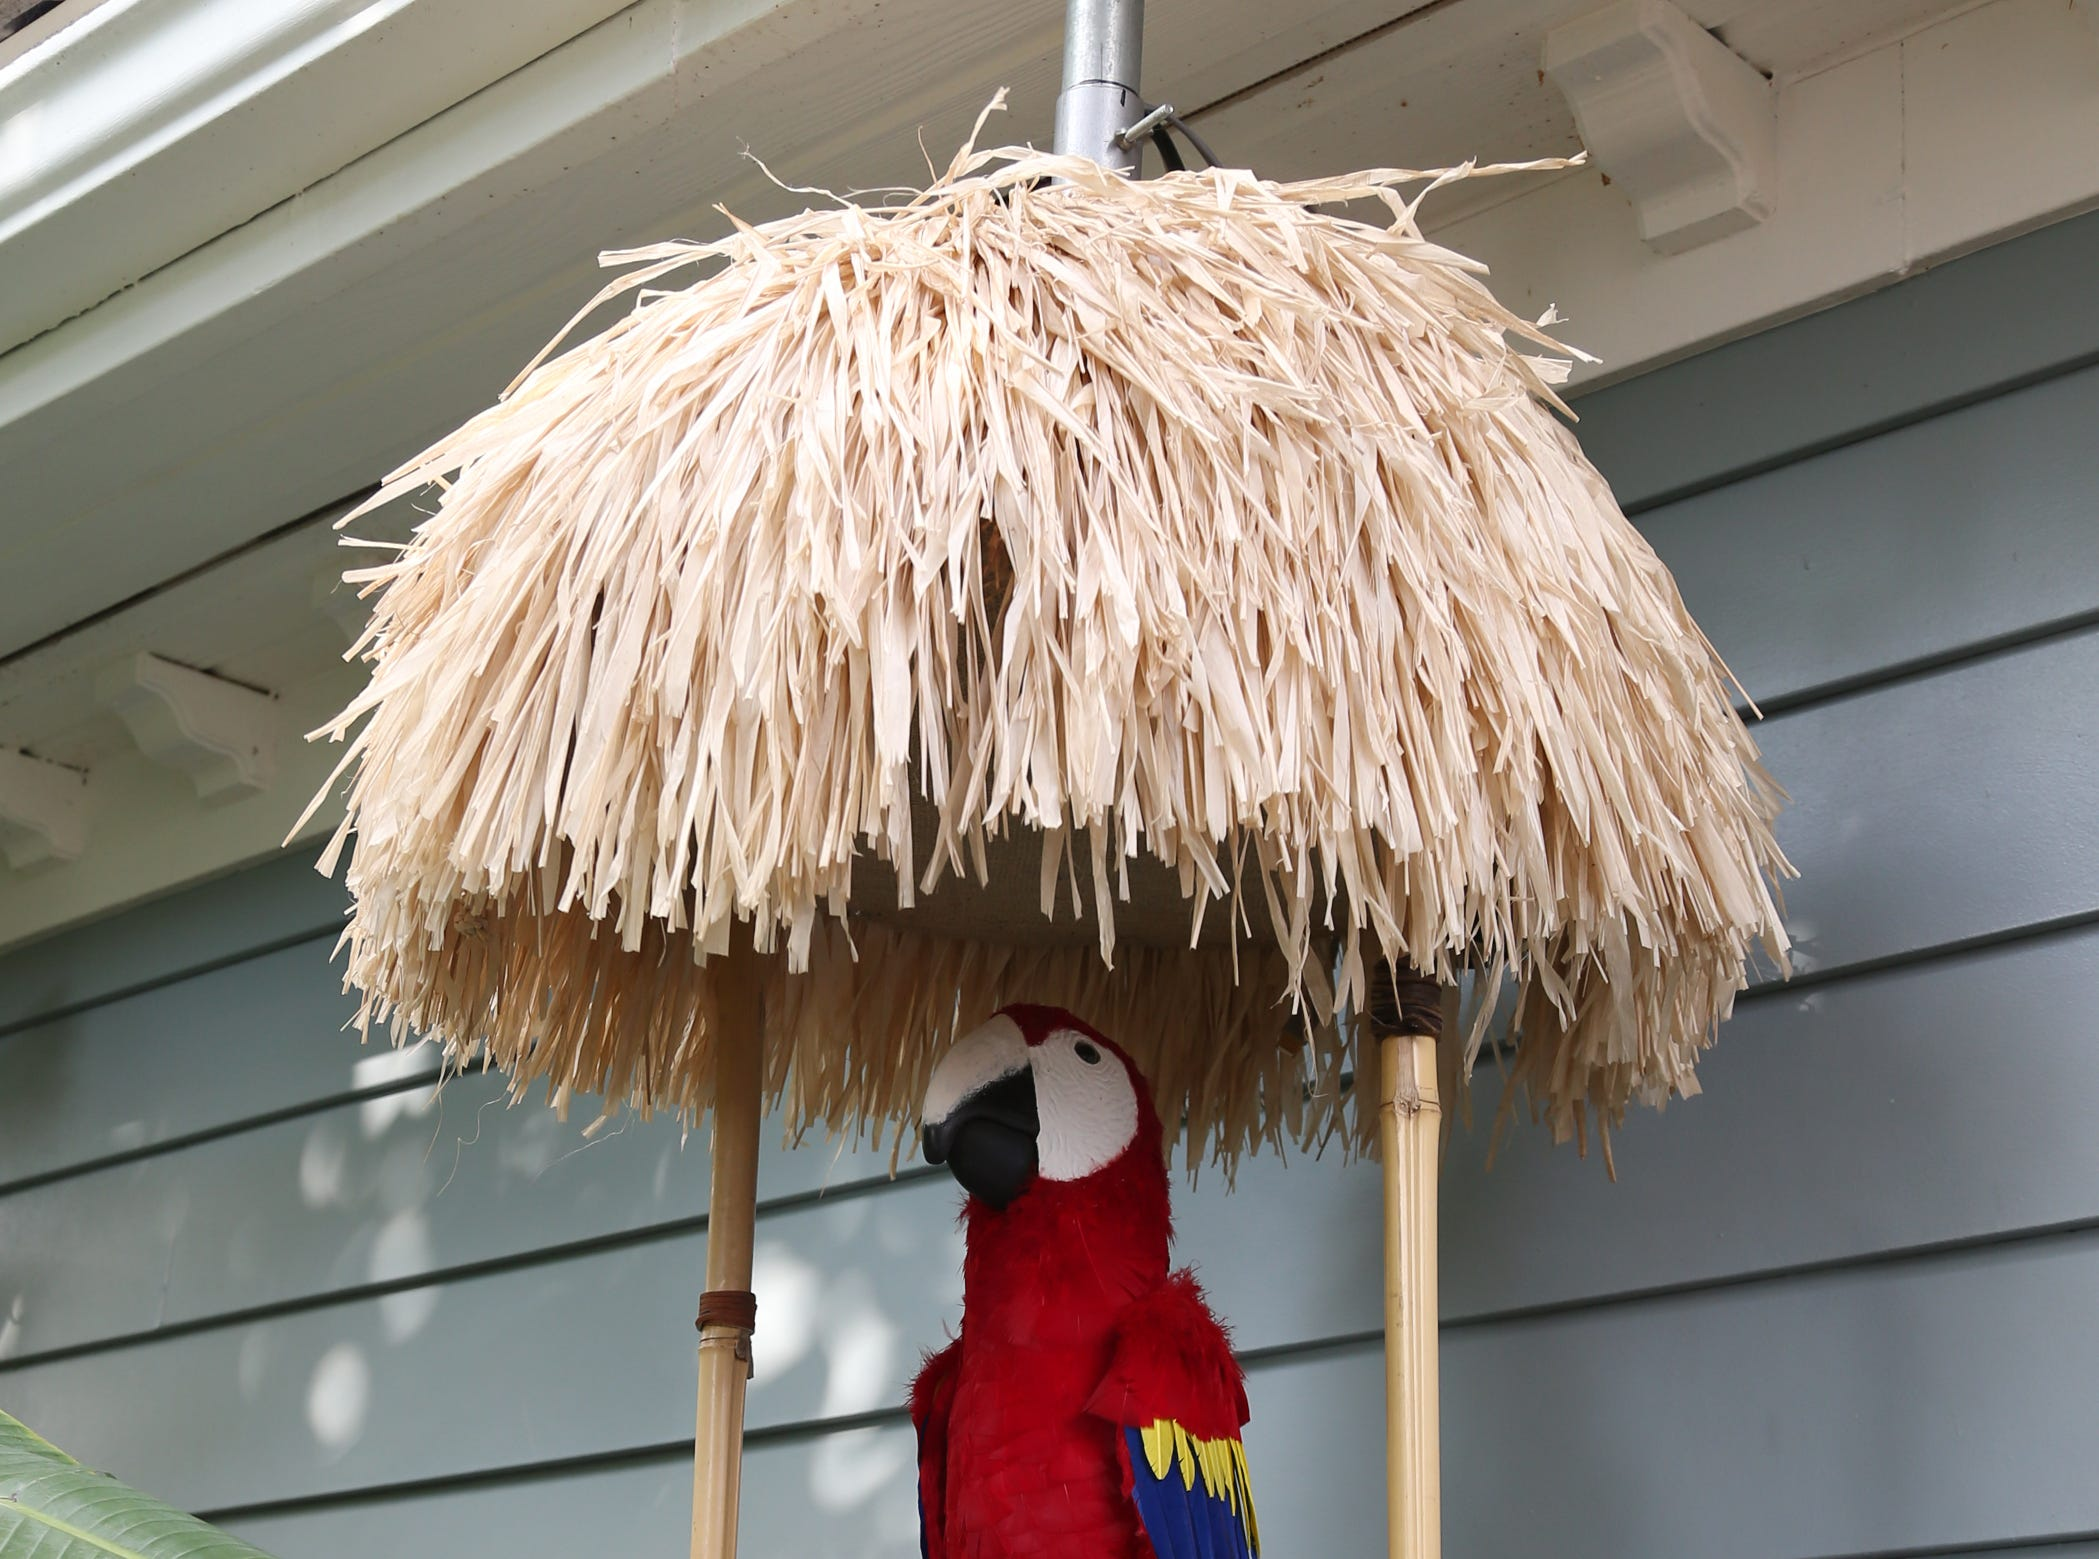 An animatronic bird named Pedro welcomes guests to the Victorian-style home of Mike and Lorraine Newlon in the Santa Rosa Valley. The bird was made by the same people who worked on the characters in the Enchanted Tiki Room at Disneyland.